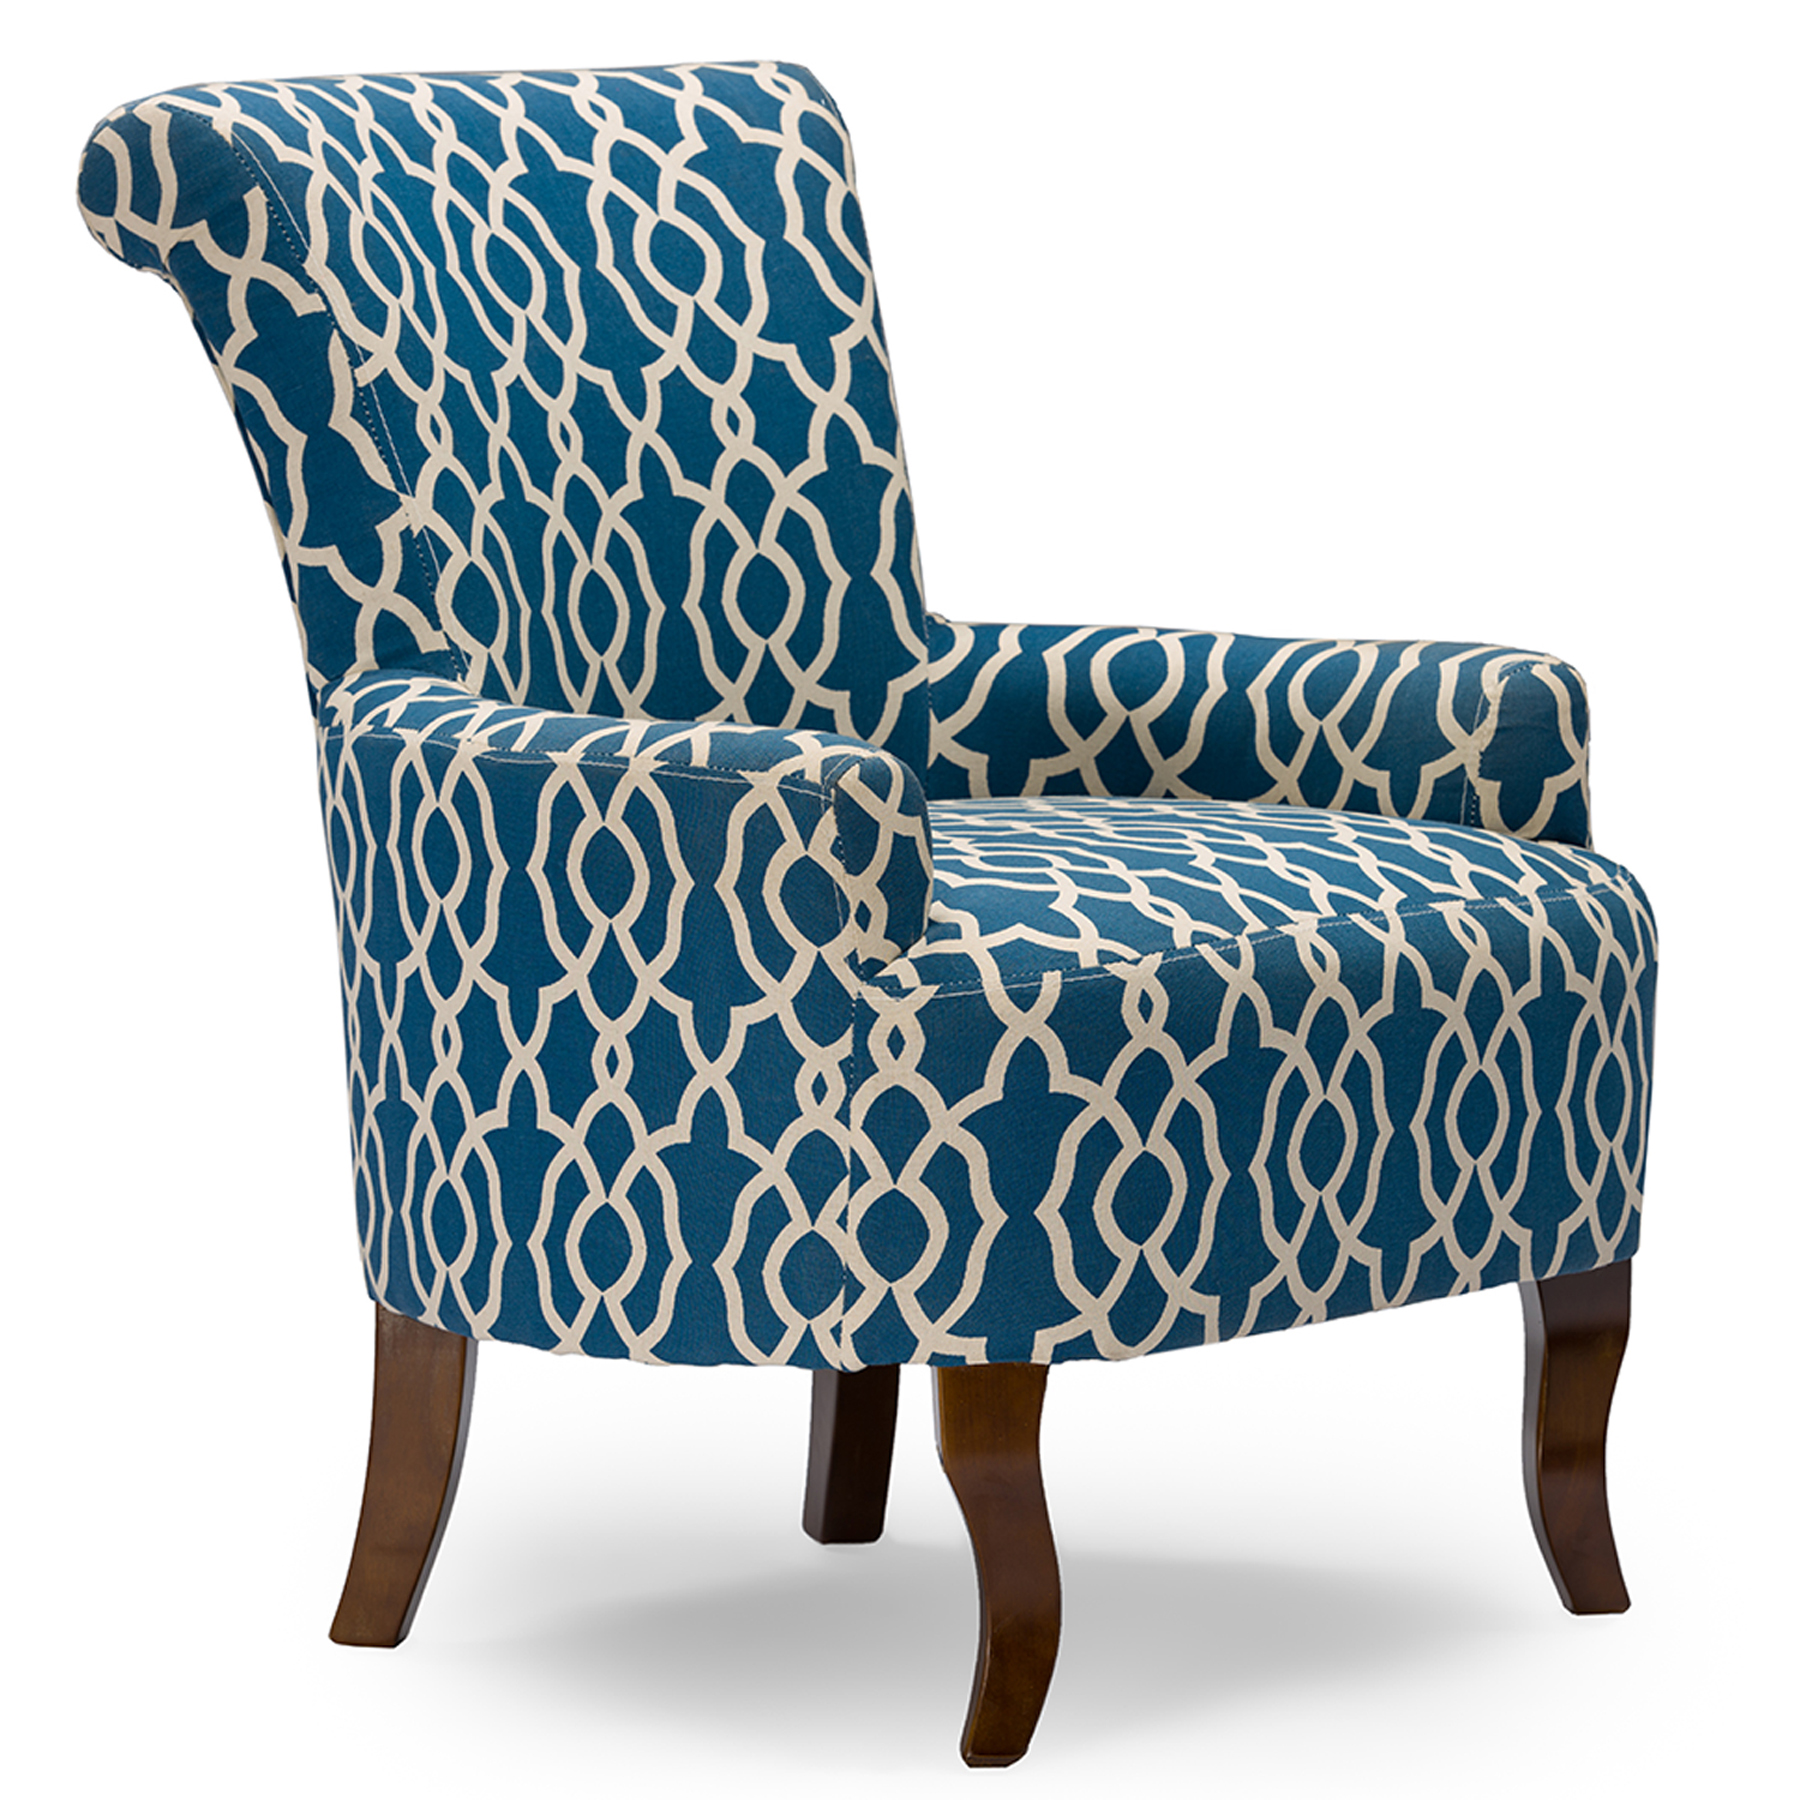 Patterned Chairs Baxton Studio Dixie Contemporary Fabric Armchair Navy